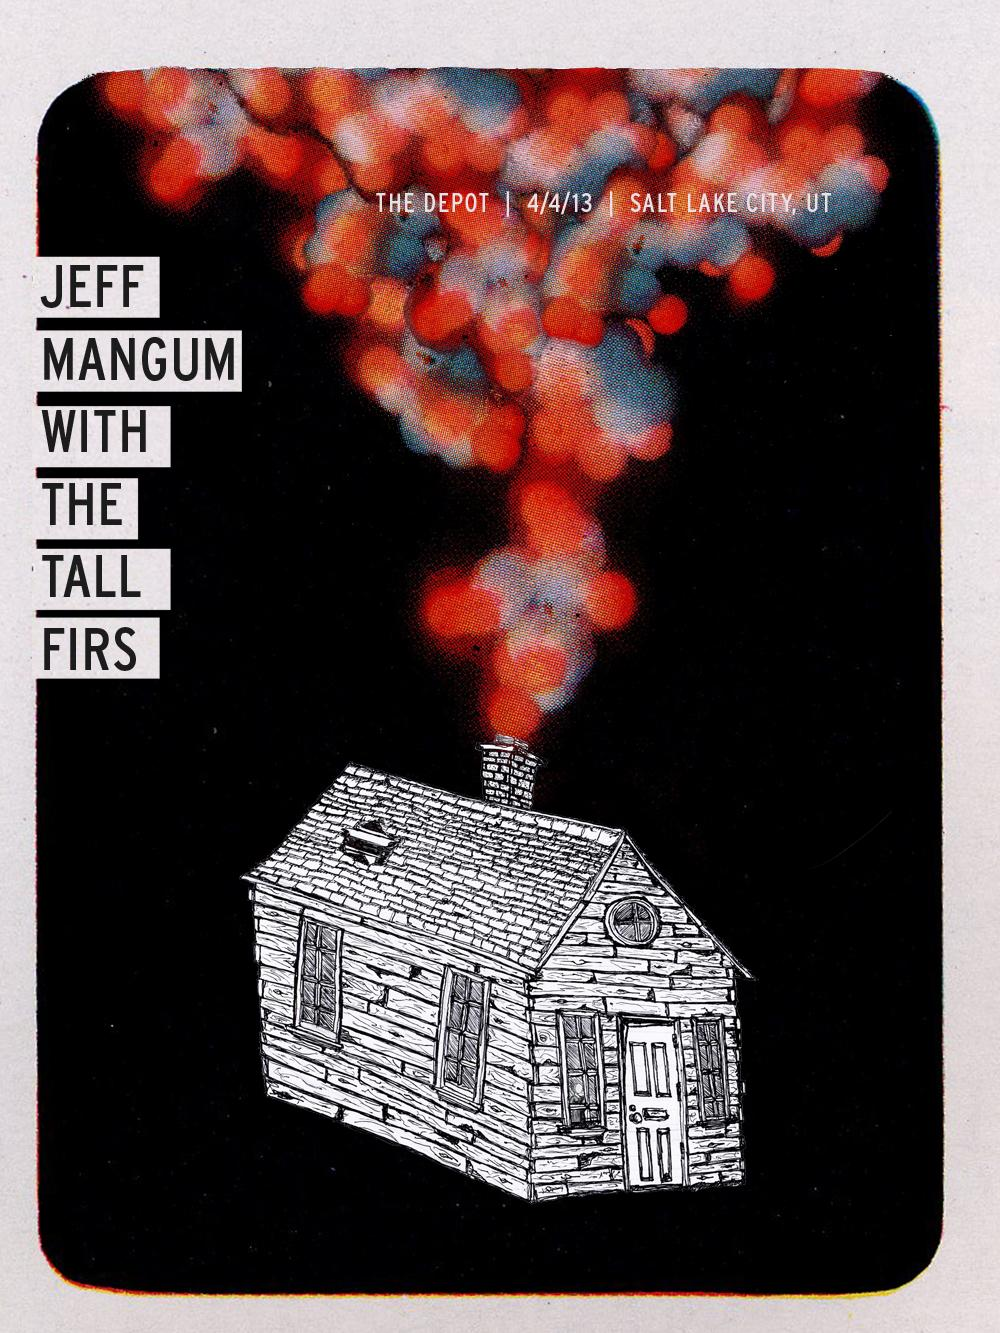 Jeff Mangum (Neutral Milk Hotel) With Tall Firs Gig poster - image 1 - student project